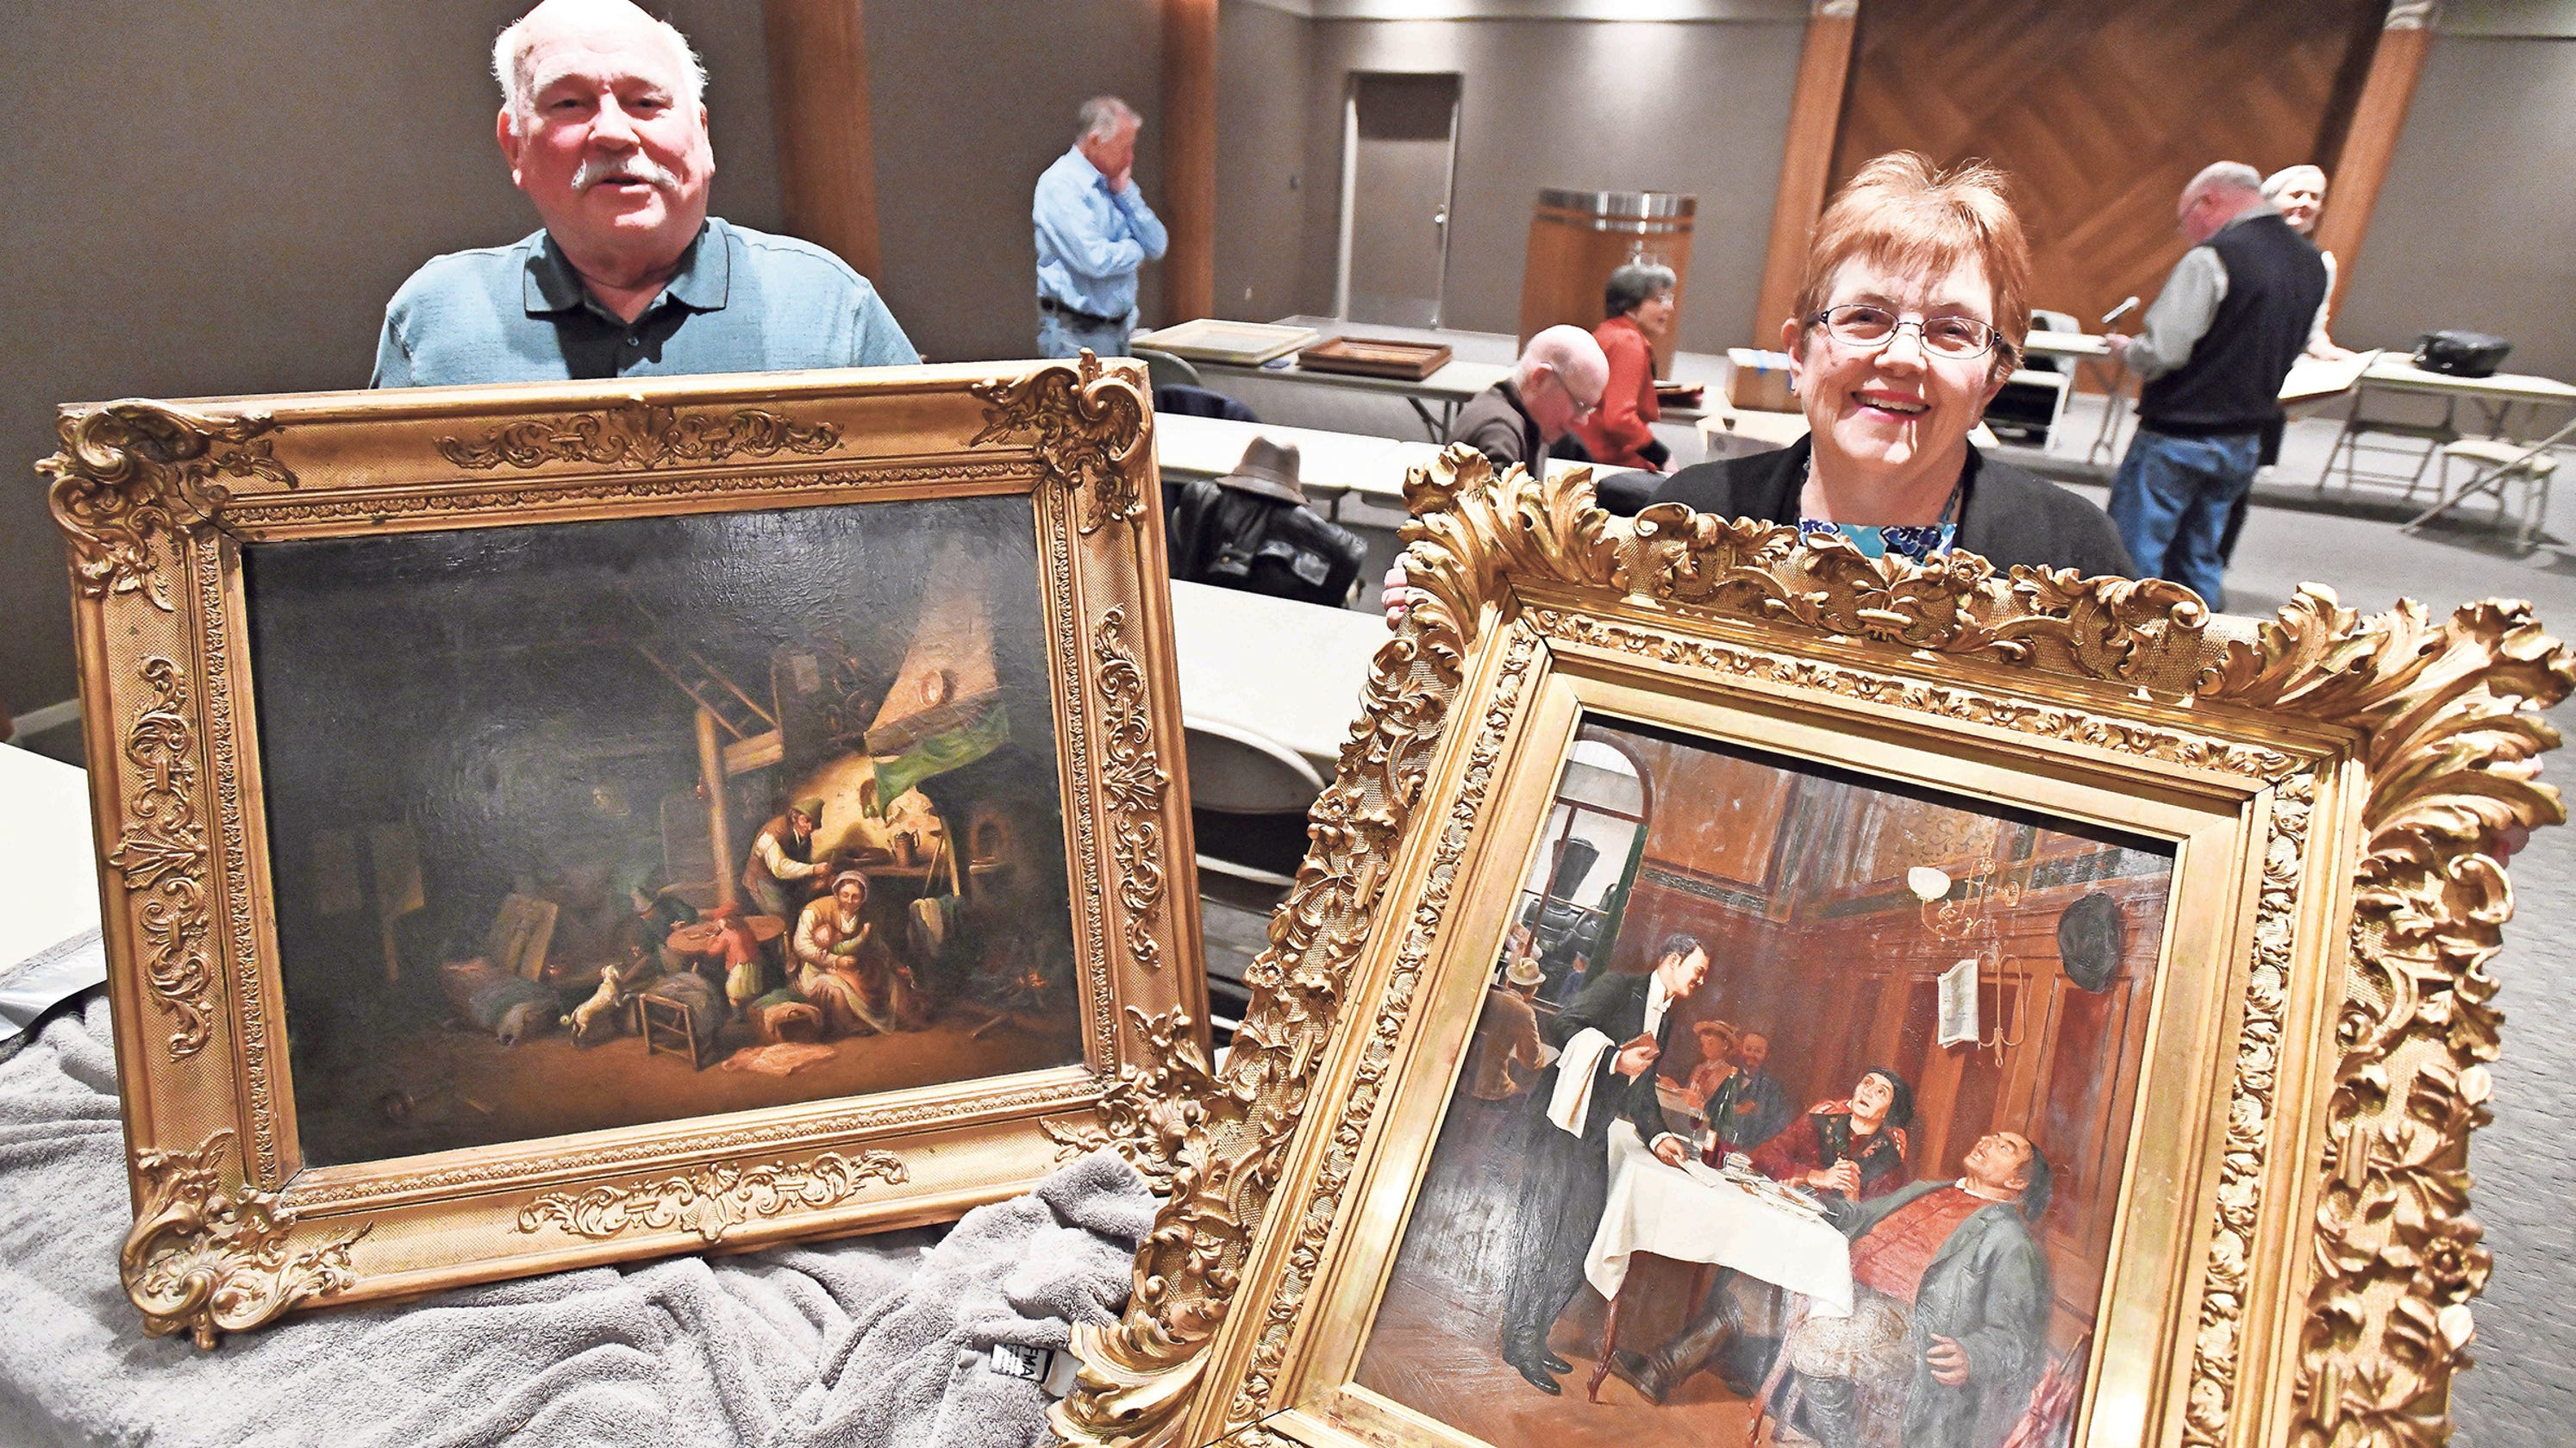 Treasure: Genre painting depicts everyday life